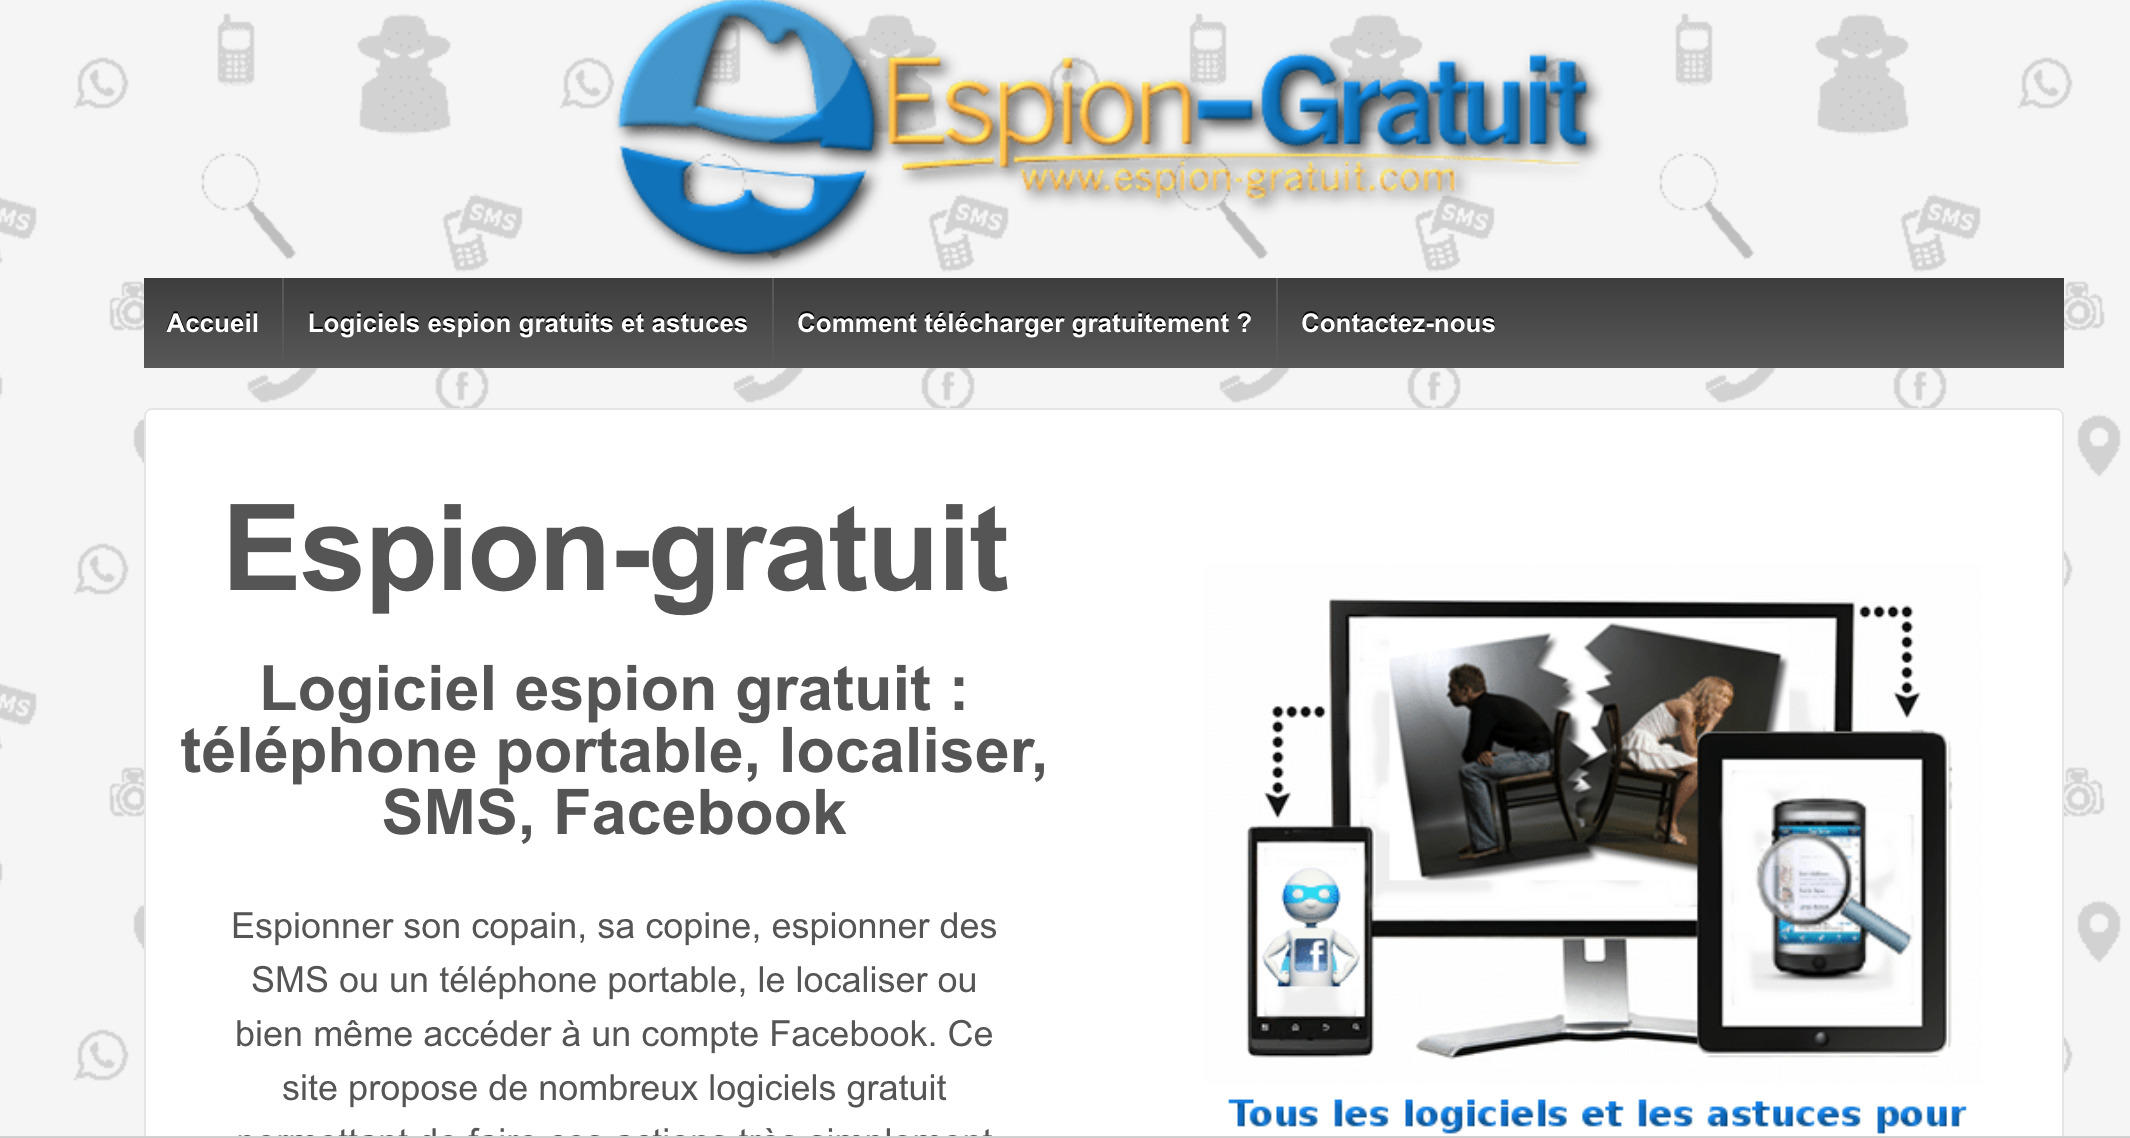 espion gratuit avis les avis sur le site espion. Black Bedroom Furniture Sets. Home Design Ideas